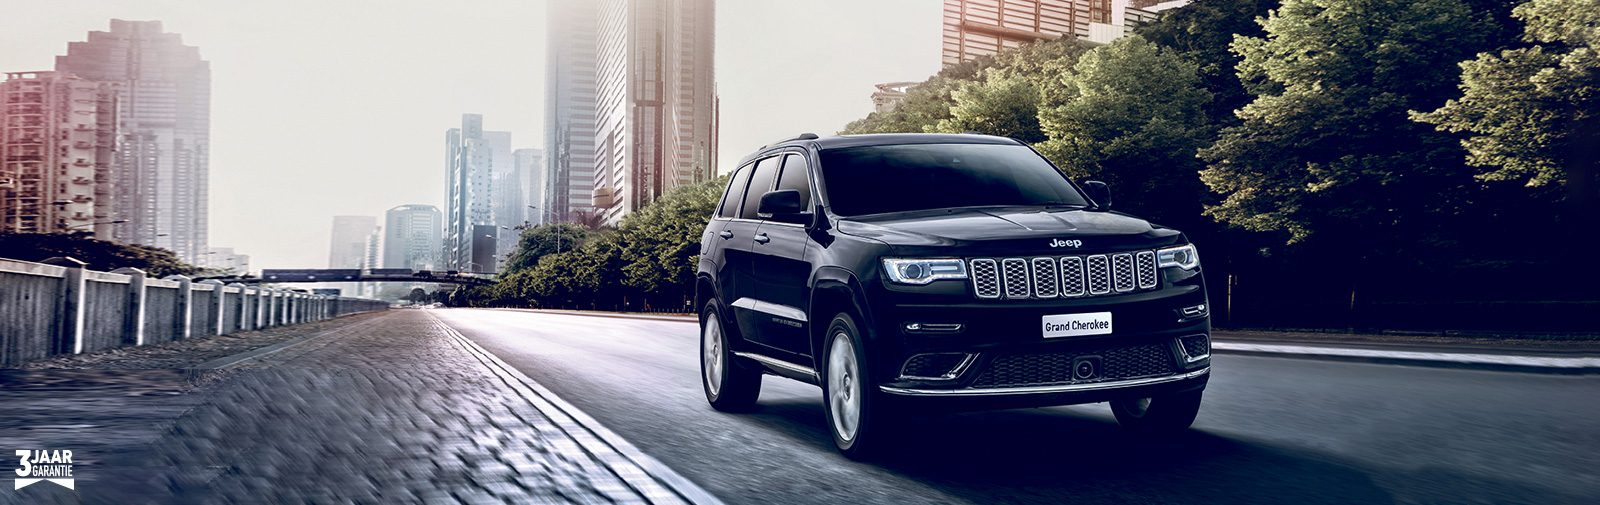 Any time anywhere jeep grand cherokee